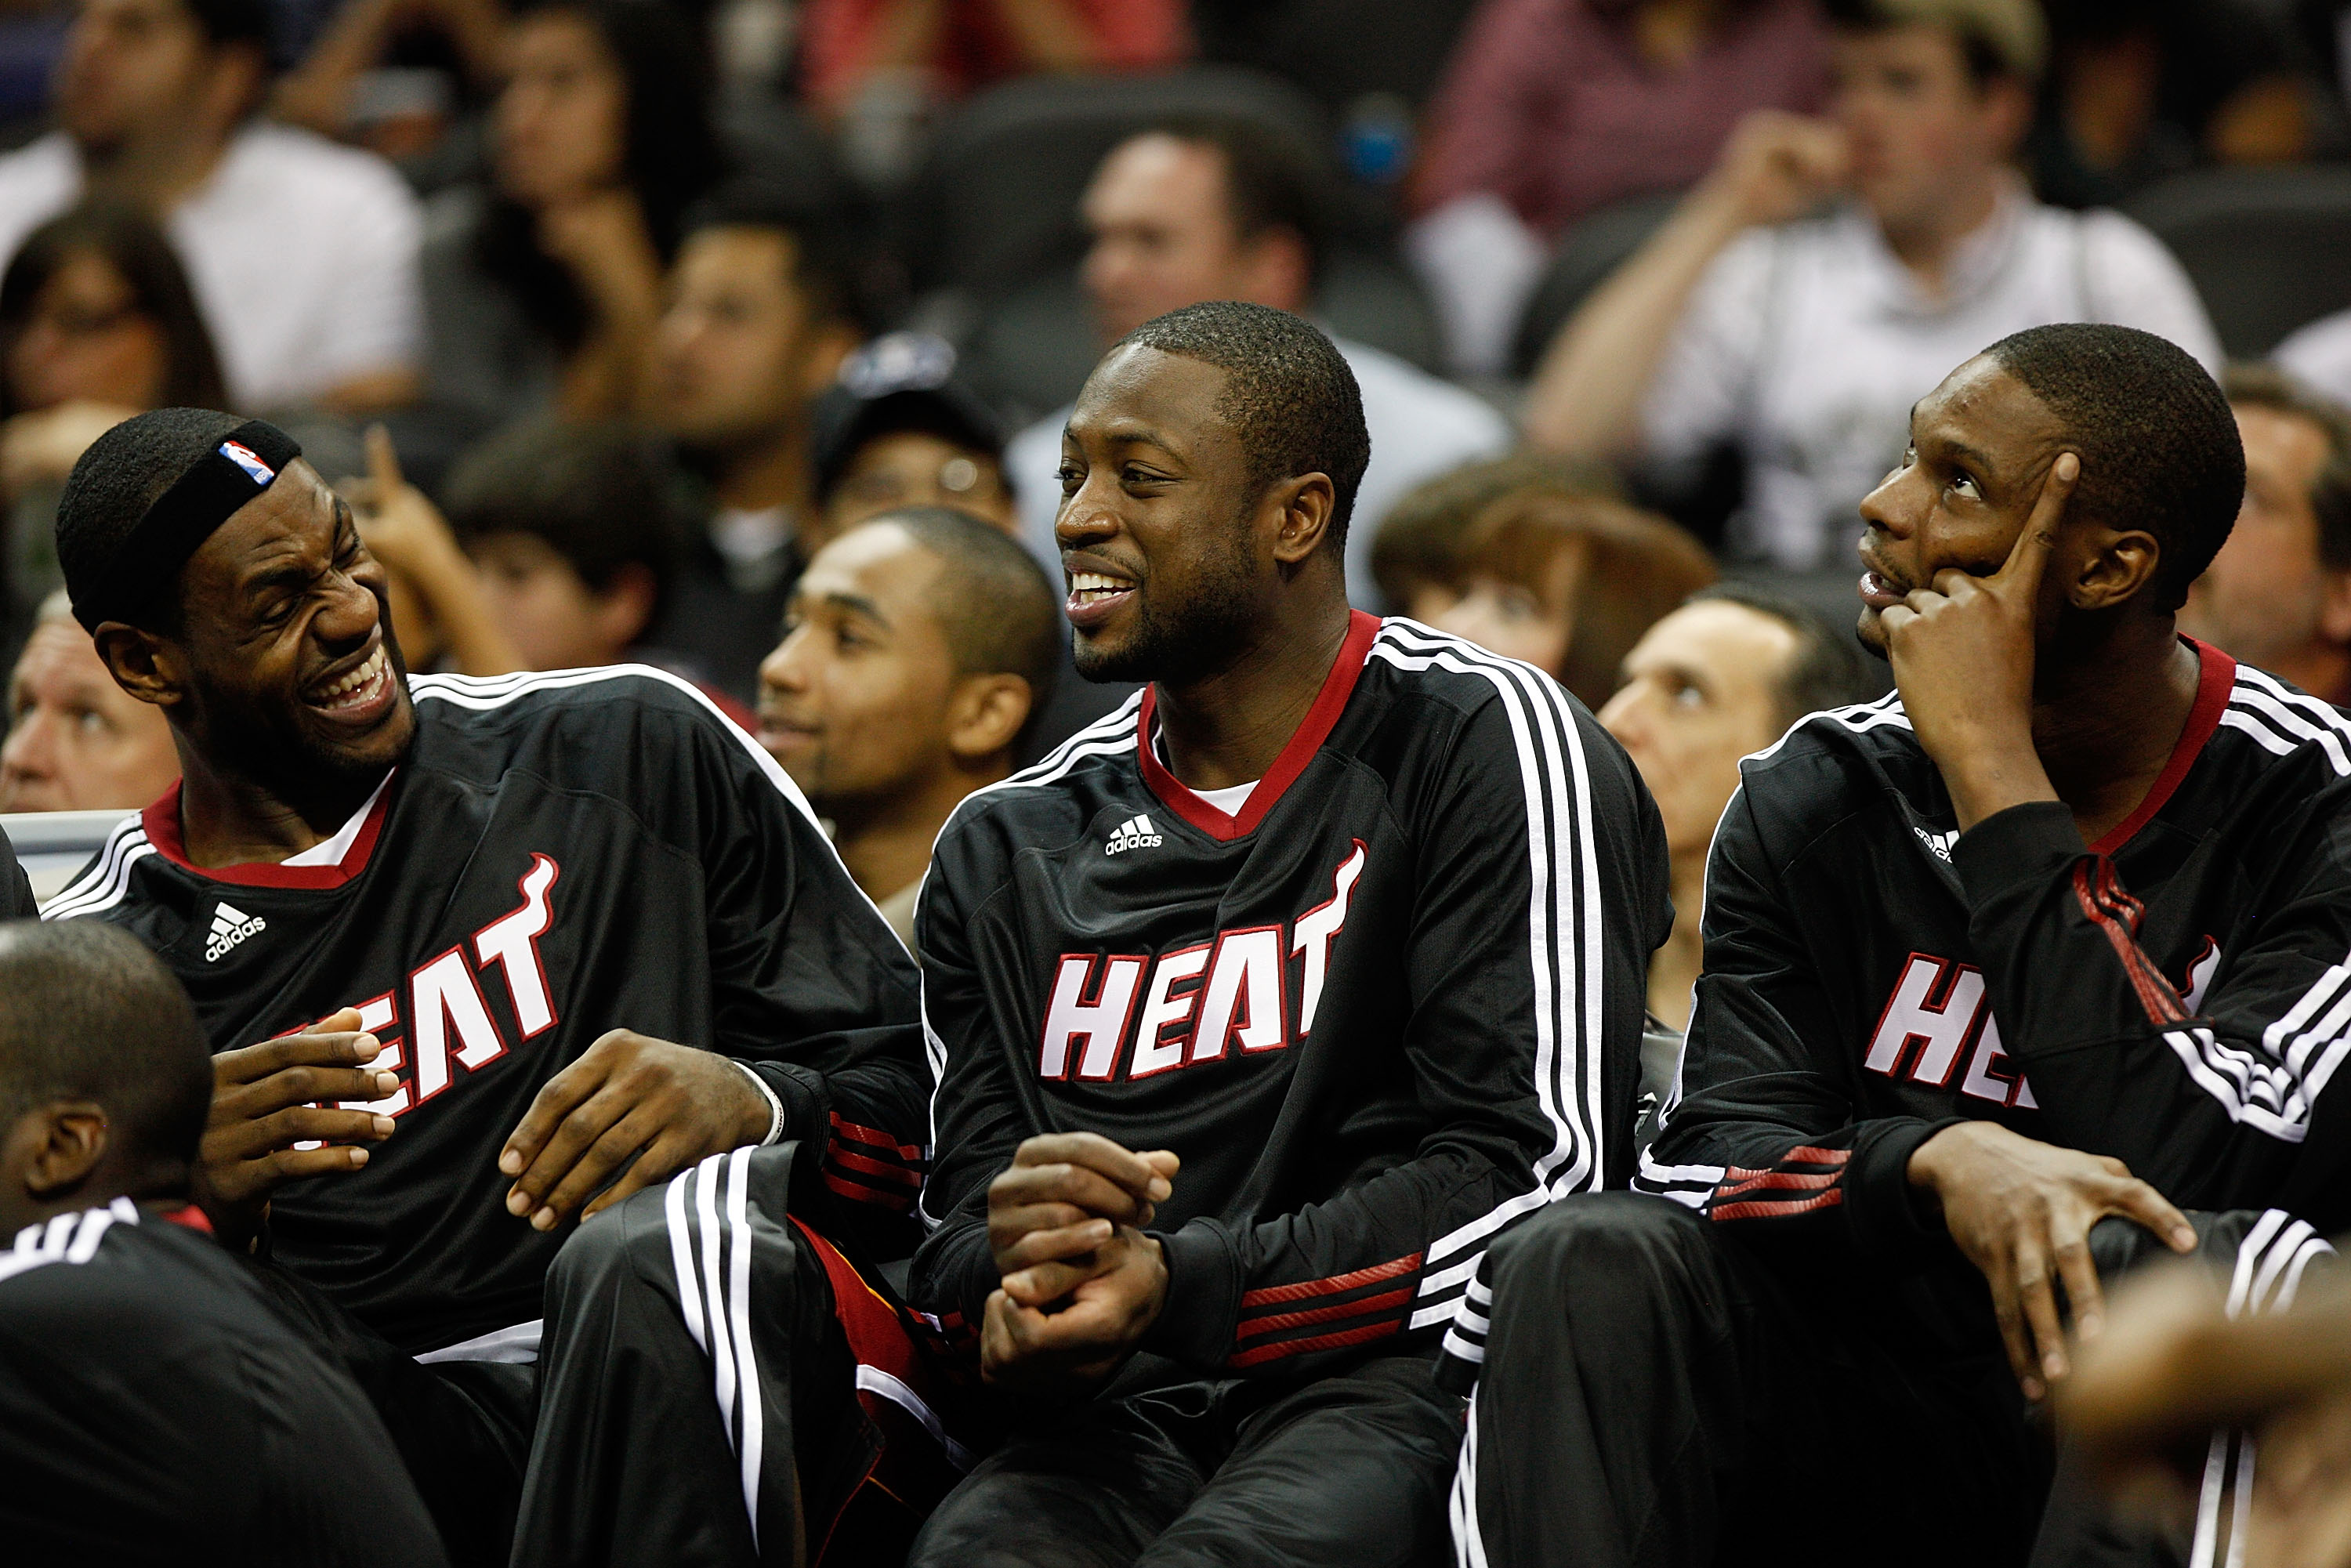 LeBron James, Dwyane Wade, and Chris Bosh